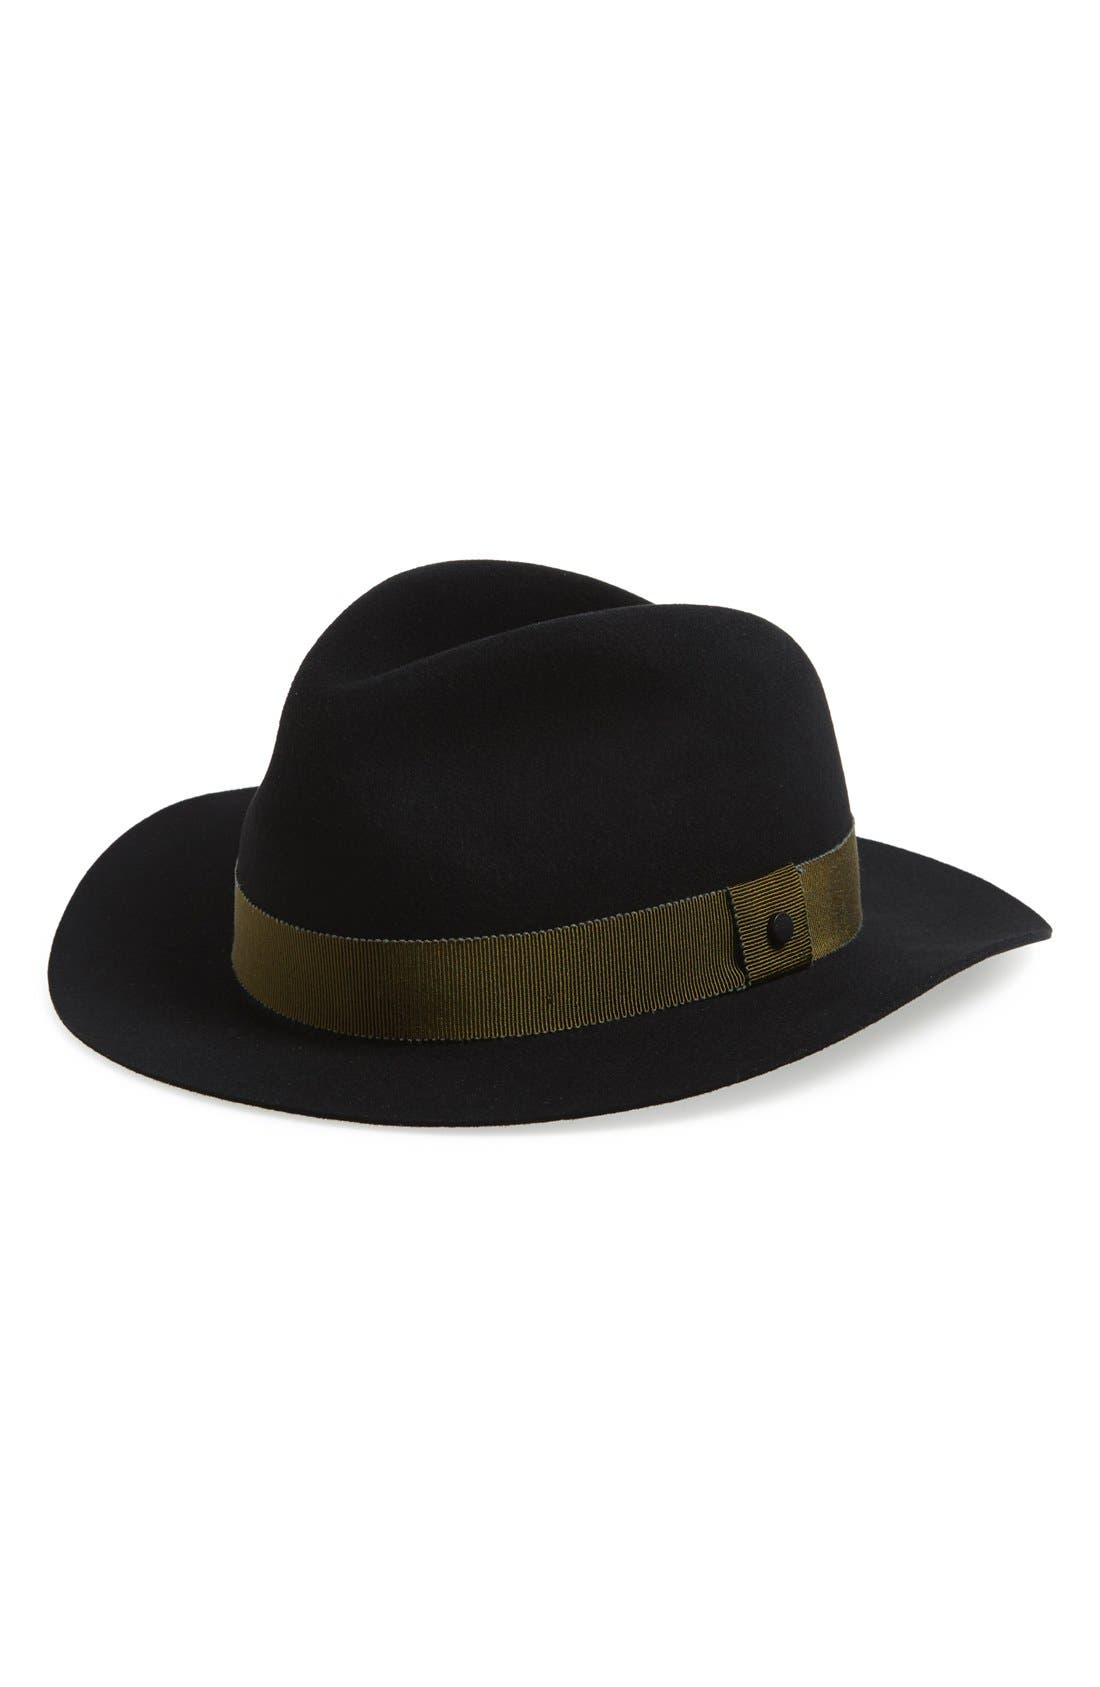 Main Image - rag & bone Floppy Brim Wool Fedora